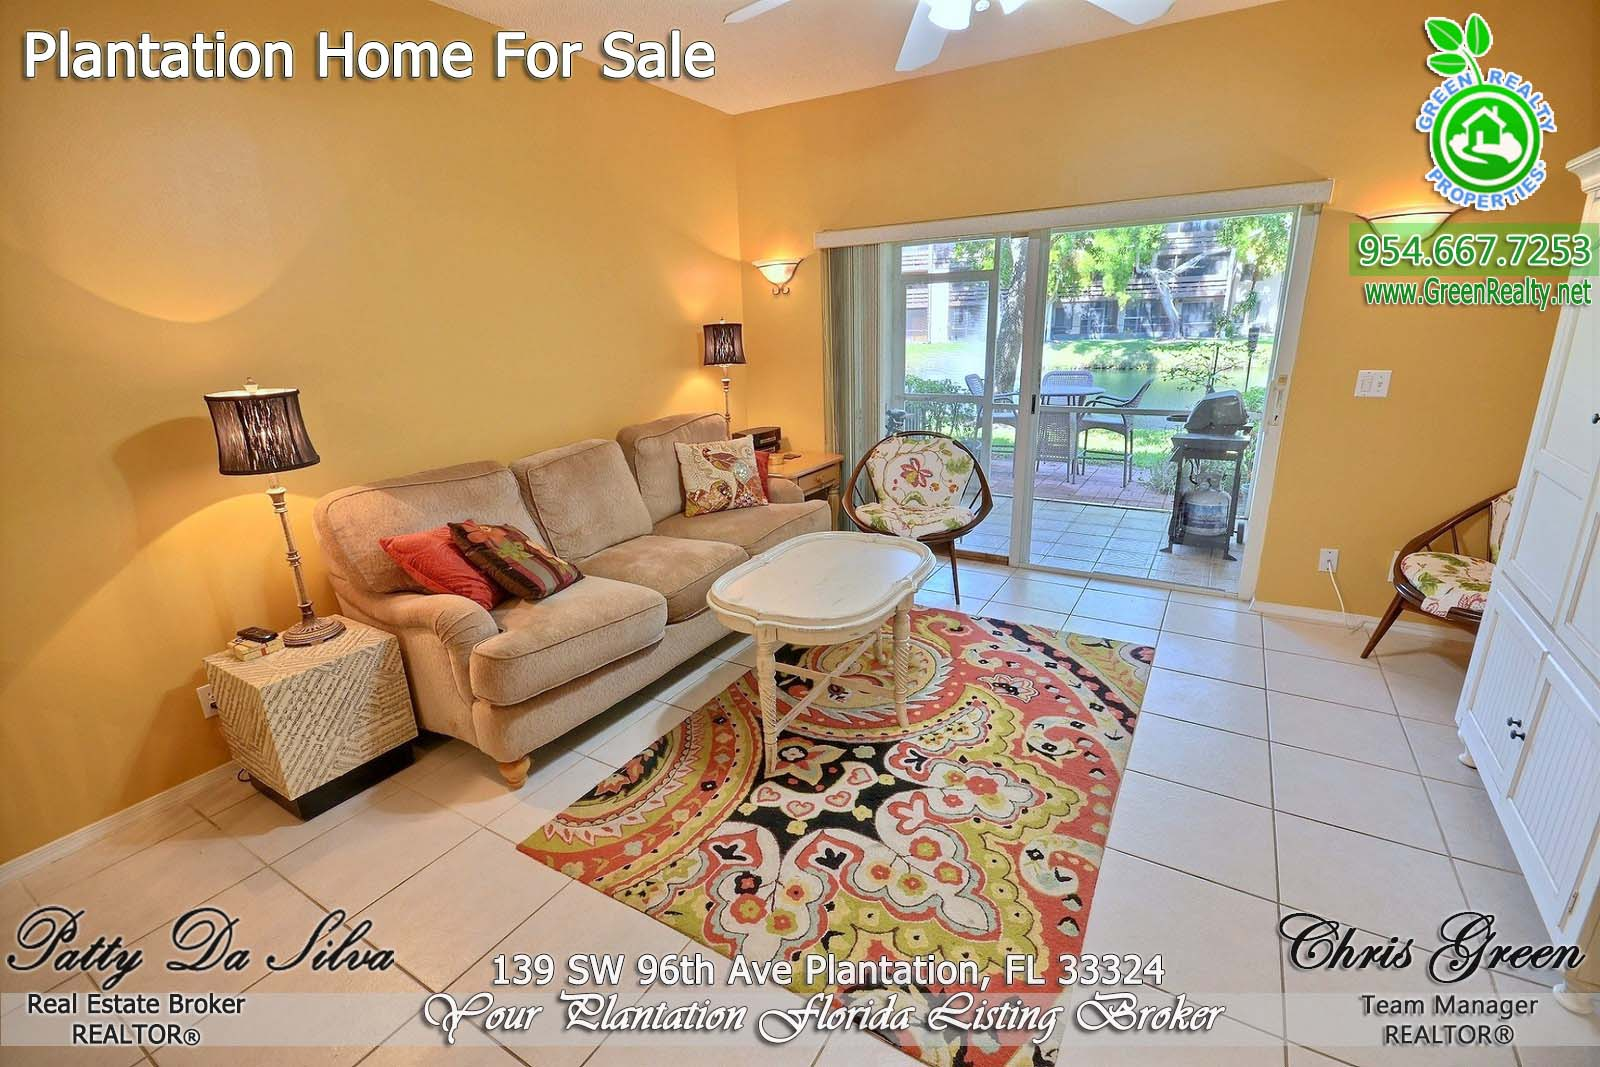 7 Homes For Sale in Plantation Florida (3)